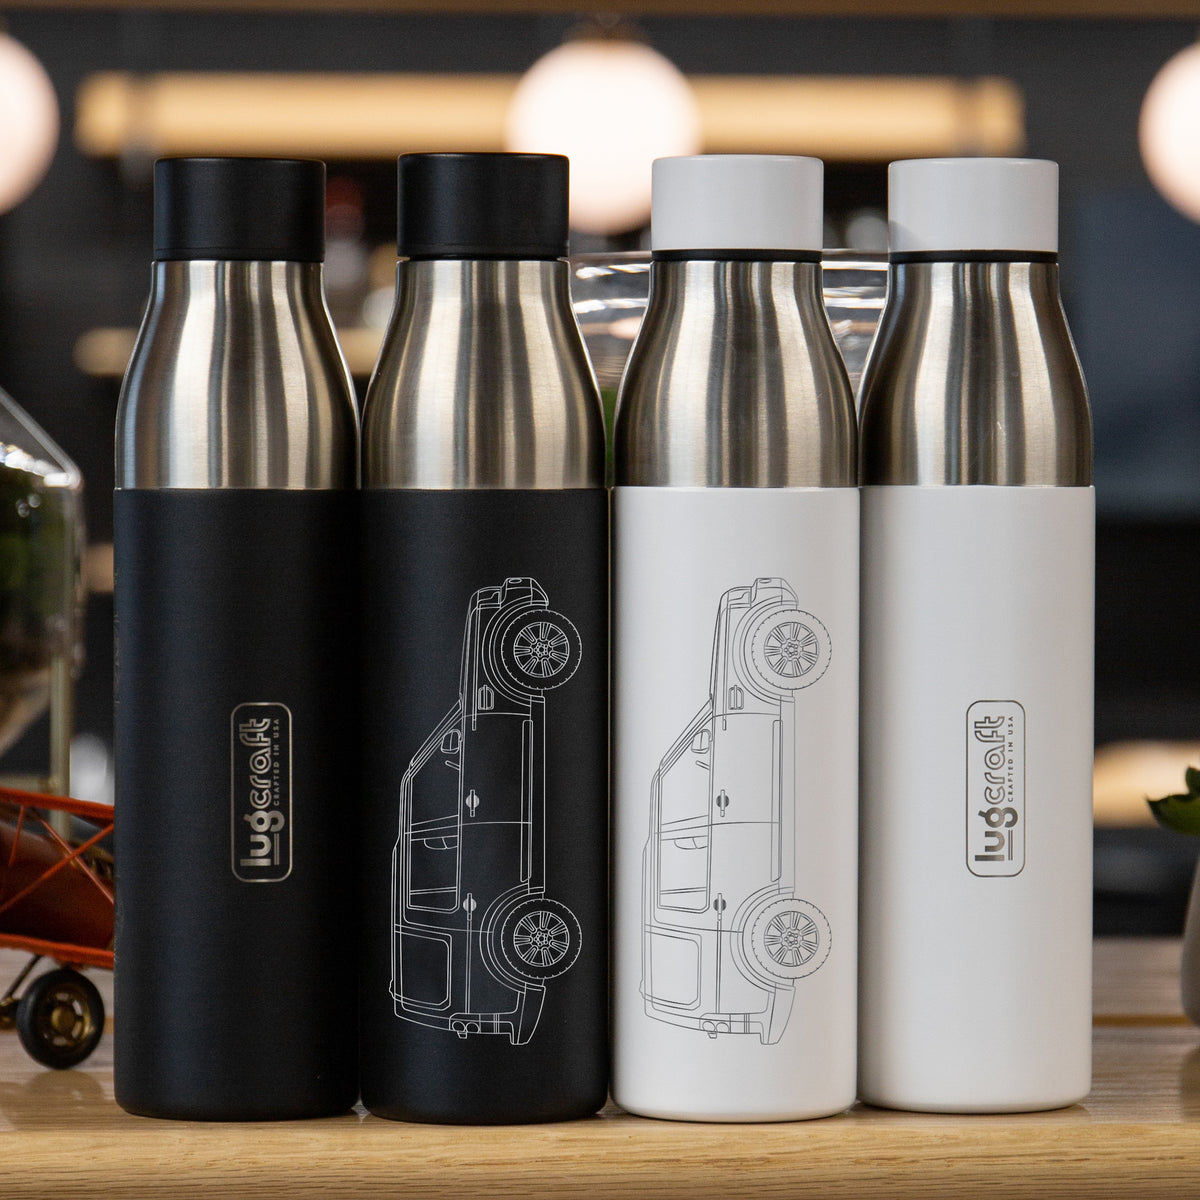 Land Rover LR4 2017 Insulated Stainless Steel Water Bottle - 21 oz